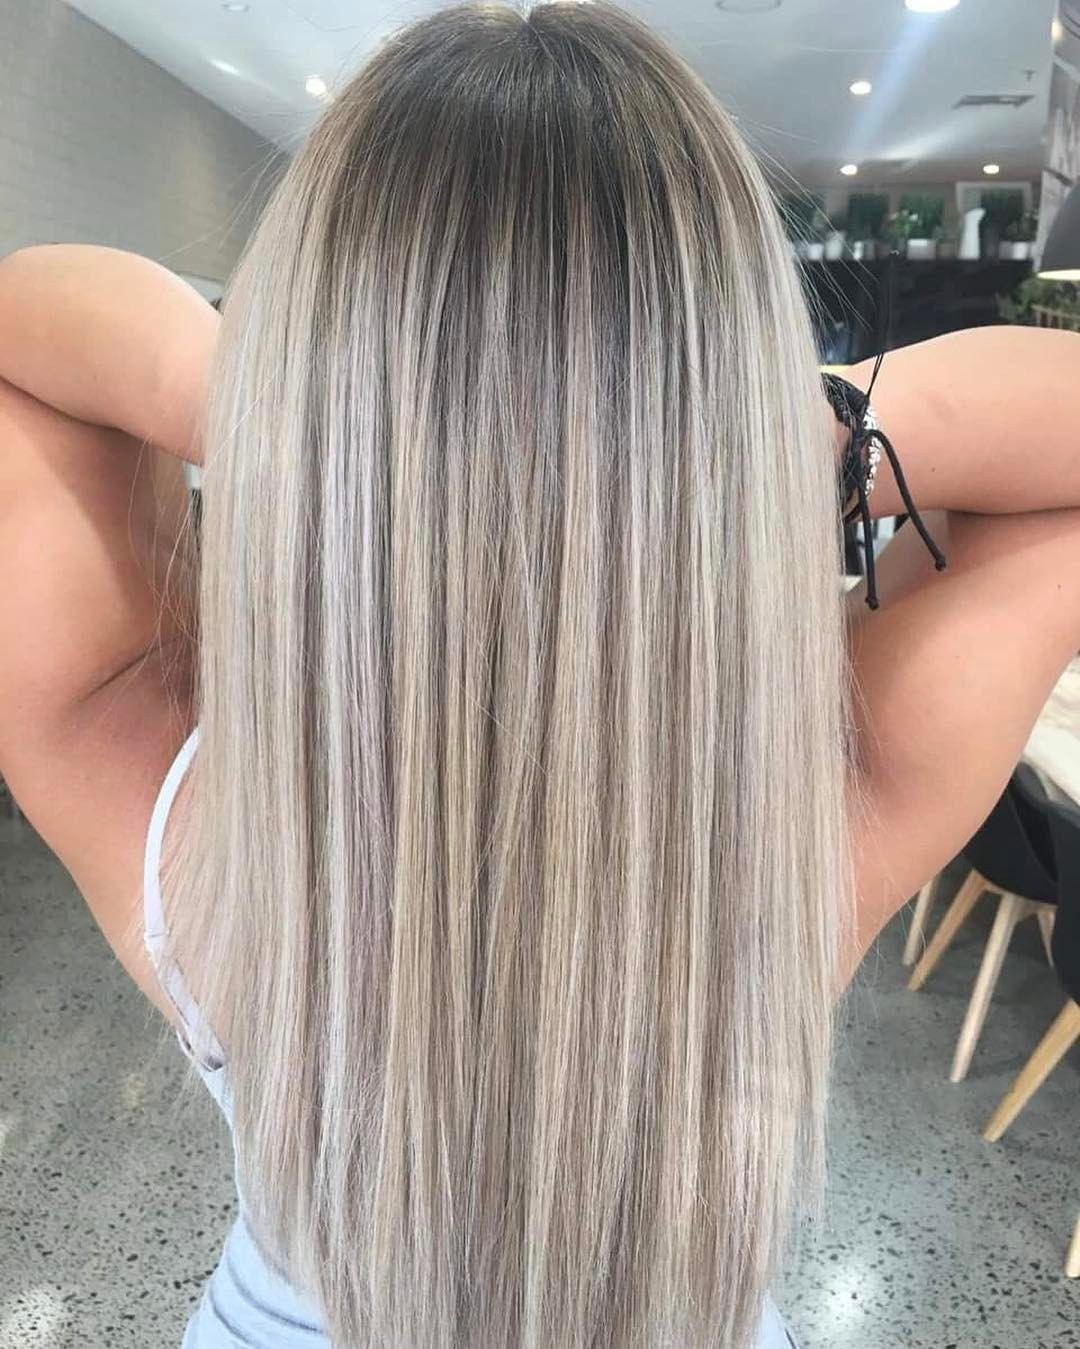 50 Unforgettable Ash Blonde Hairstyles To Inspire You Hair Styles Fall Blonde Hair Cool Hair Color